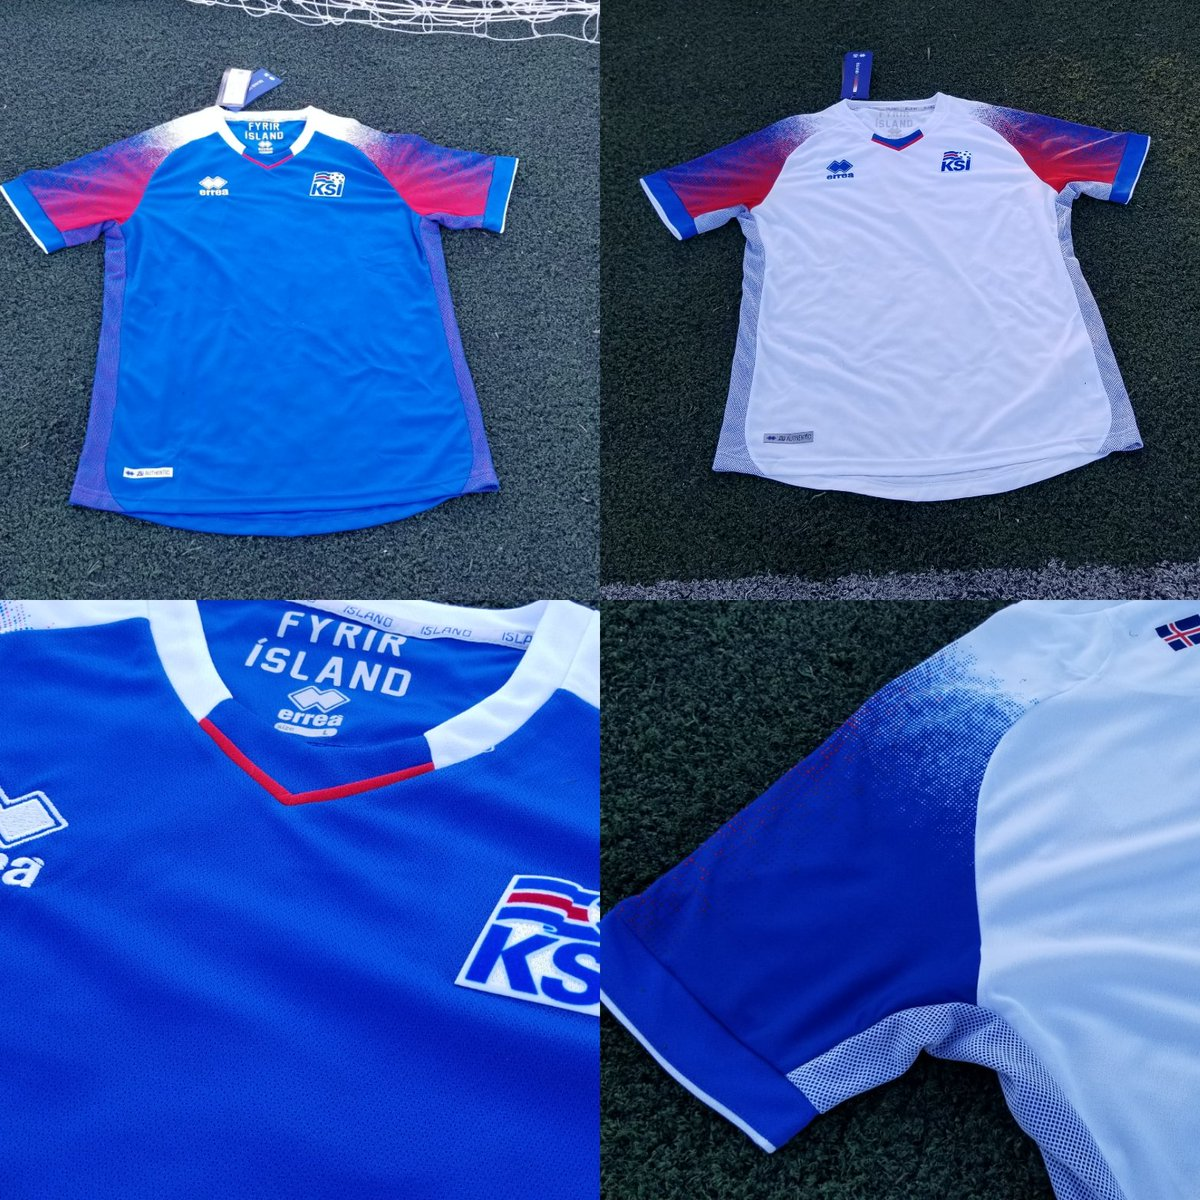 d58956879e2 Our first look at the Iceland 2018 World Cup home and away kits by Errea.  Stay tuned for our World Exclusive Up-Close of them.